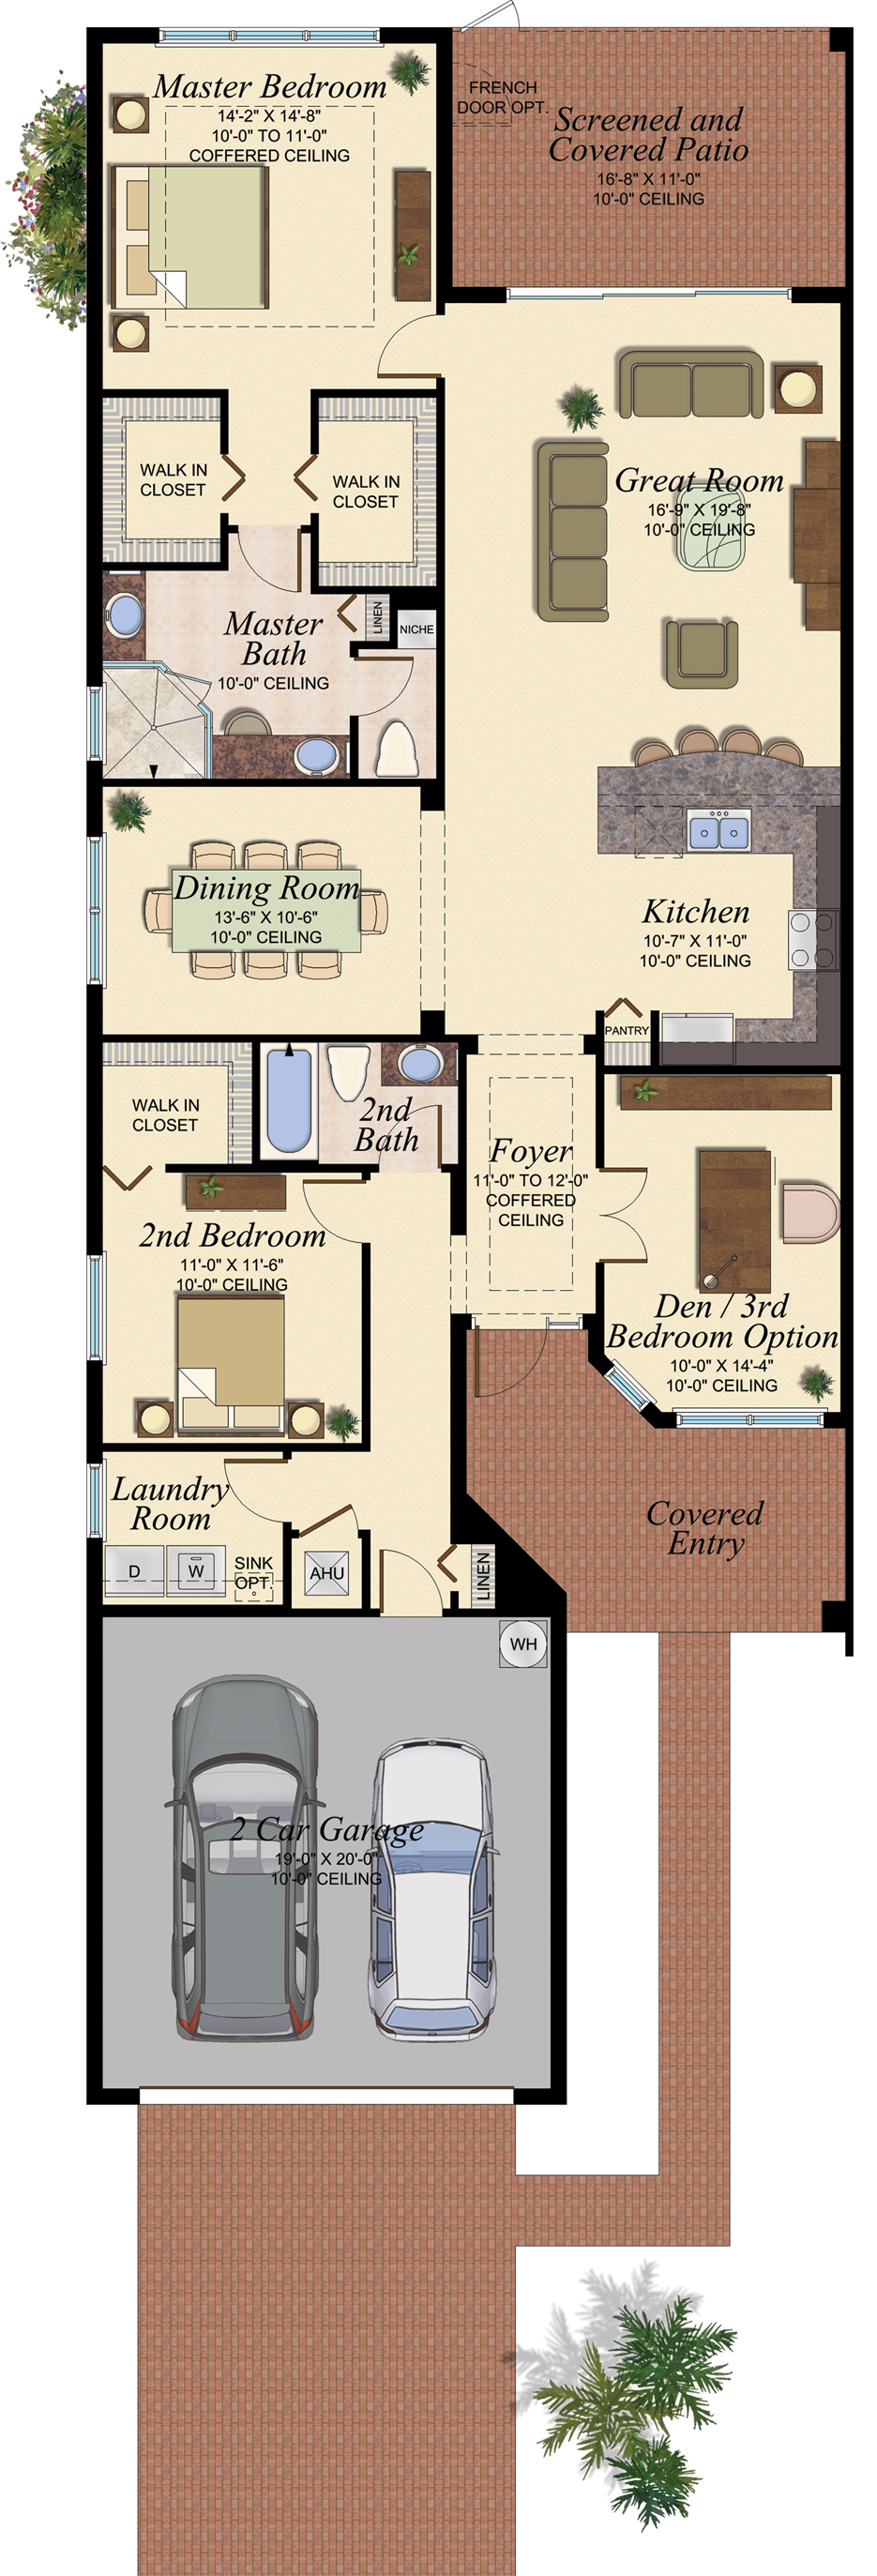 Oxford At Marbella Isles Floor Plans Florida Homes For Sale Architecture Plan